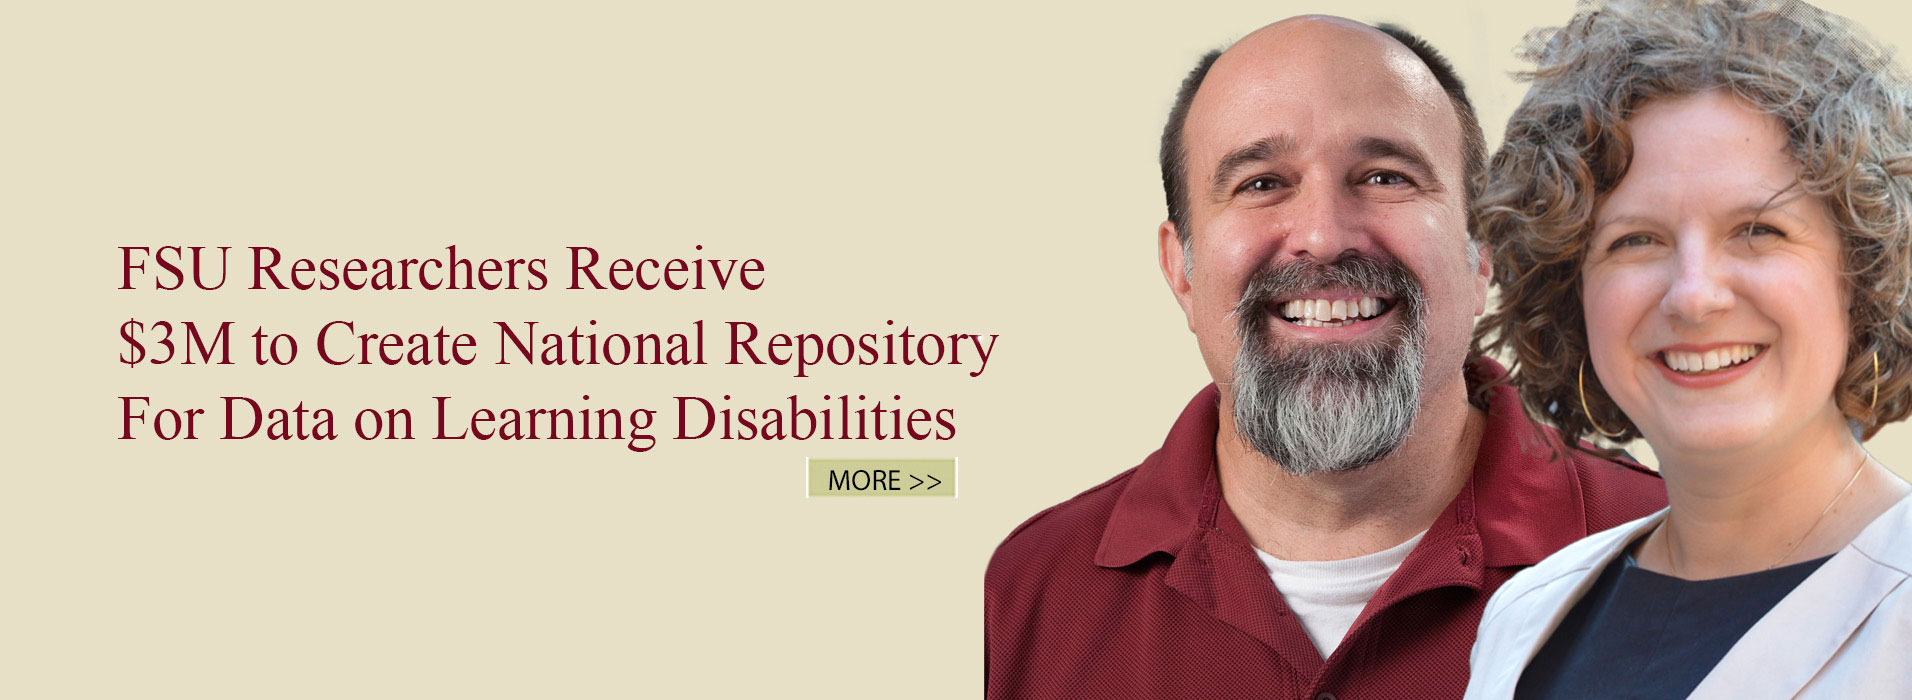 FSU Researchers Receive $3M to Create National Repository For Data on Learning Disabilities